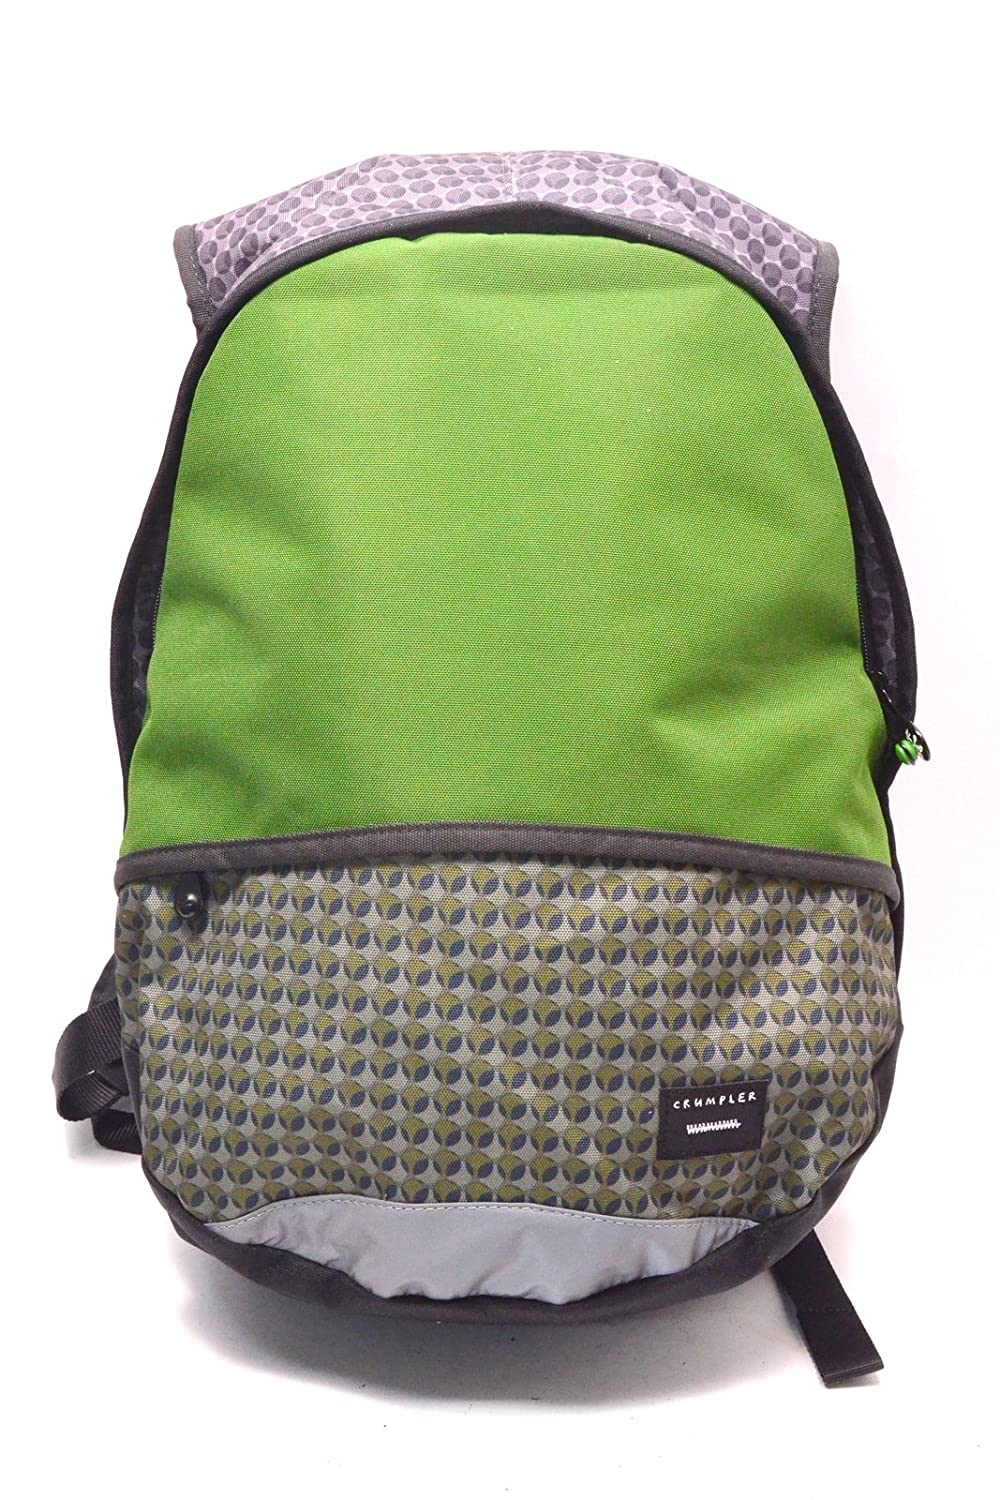 Crumpler The Private Zoo Backpack-Olive Dot by Crumpler   B0050D5B4M